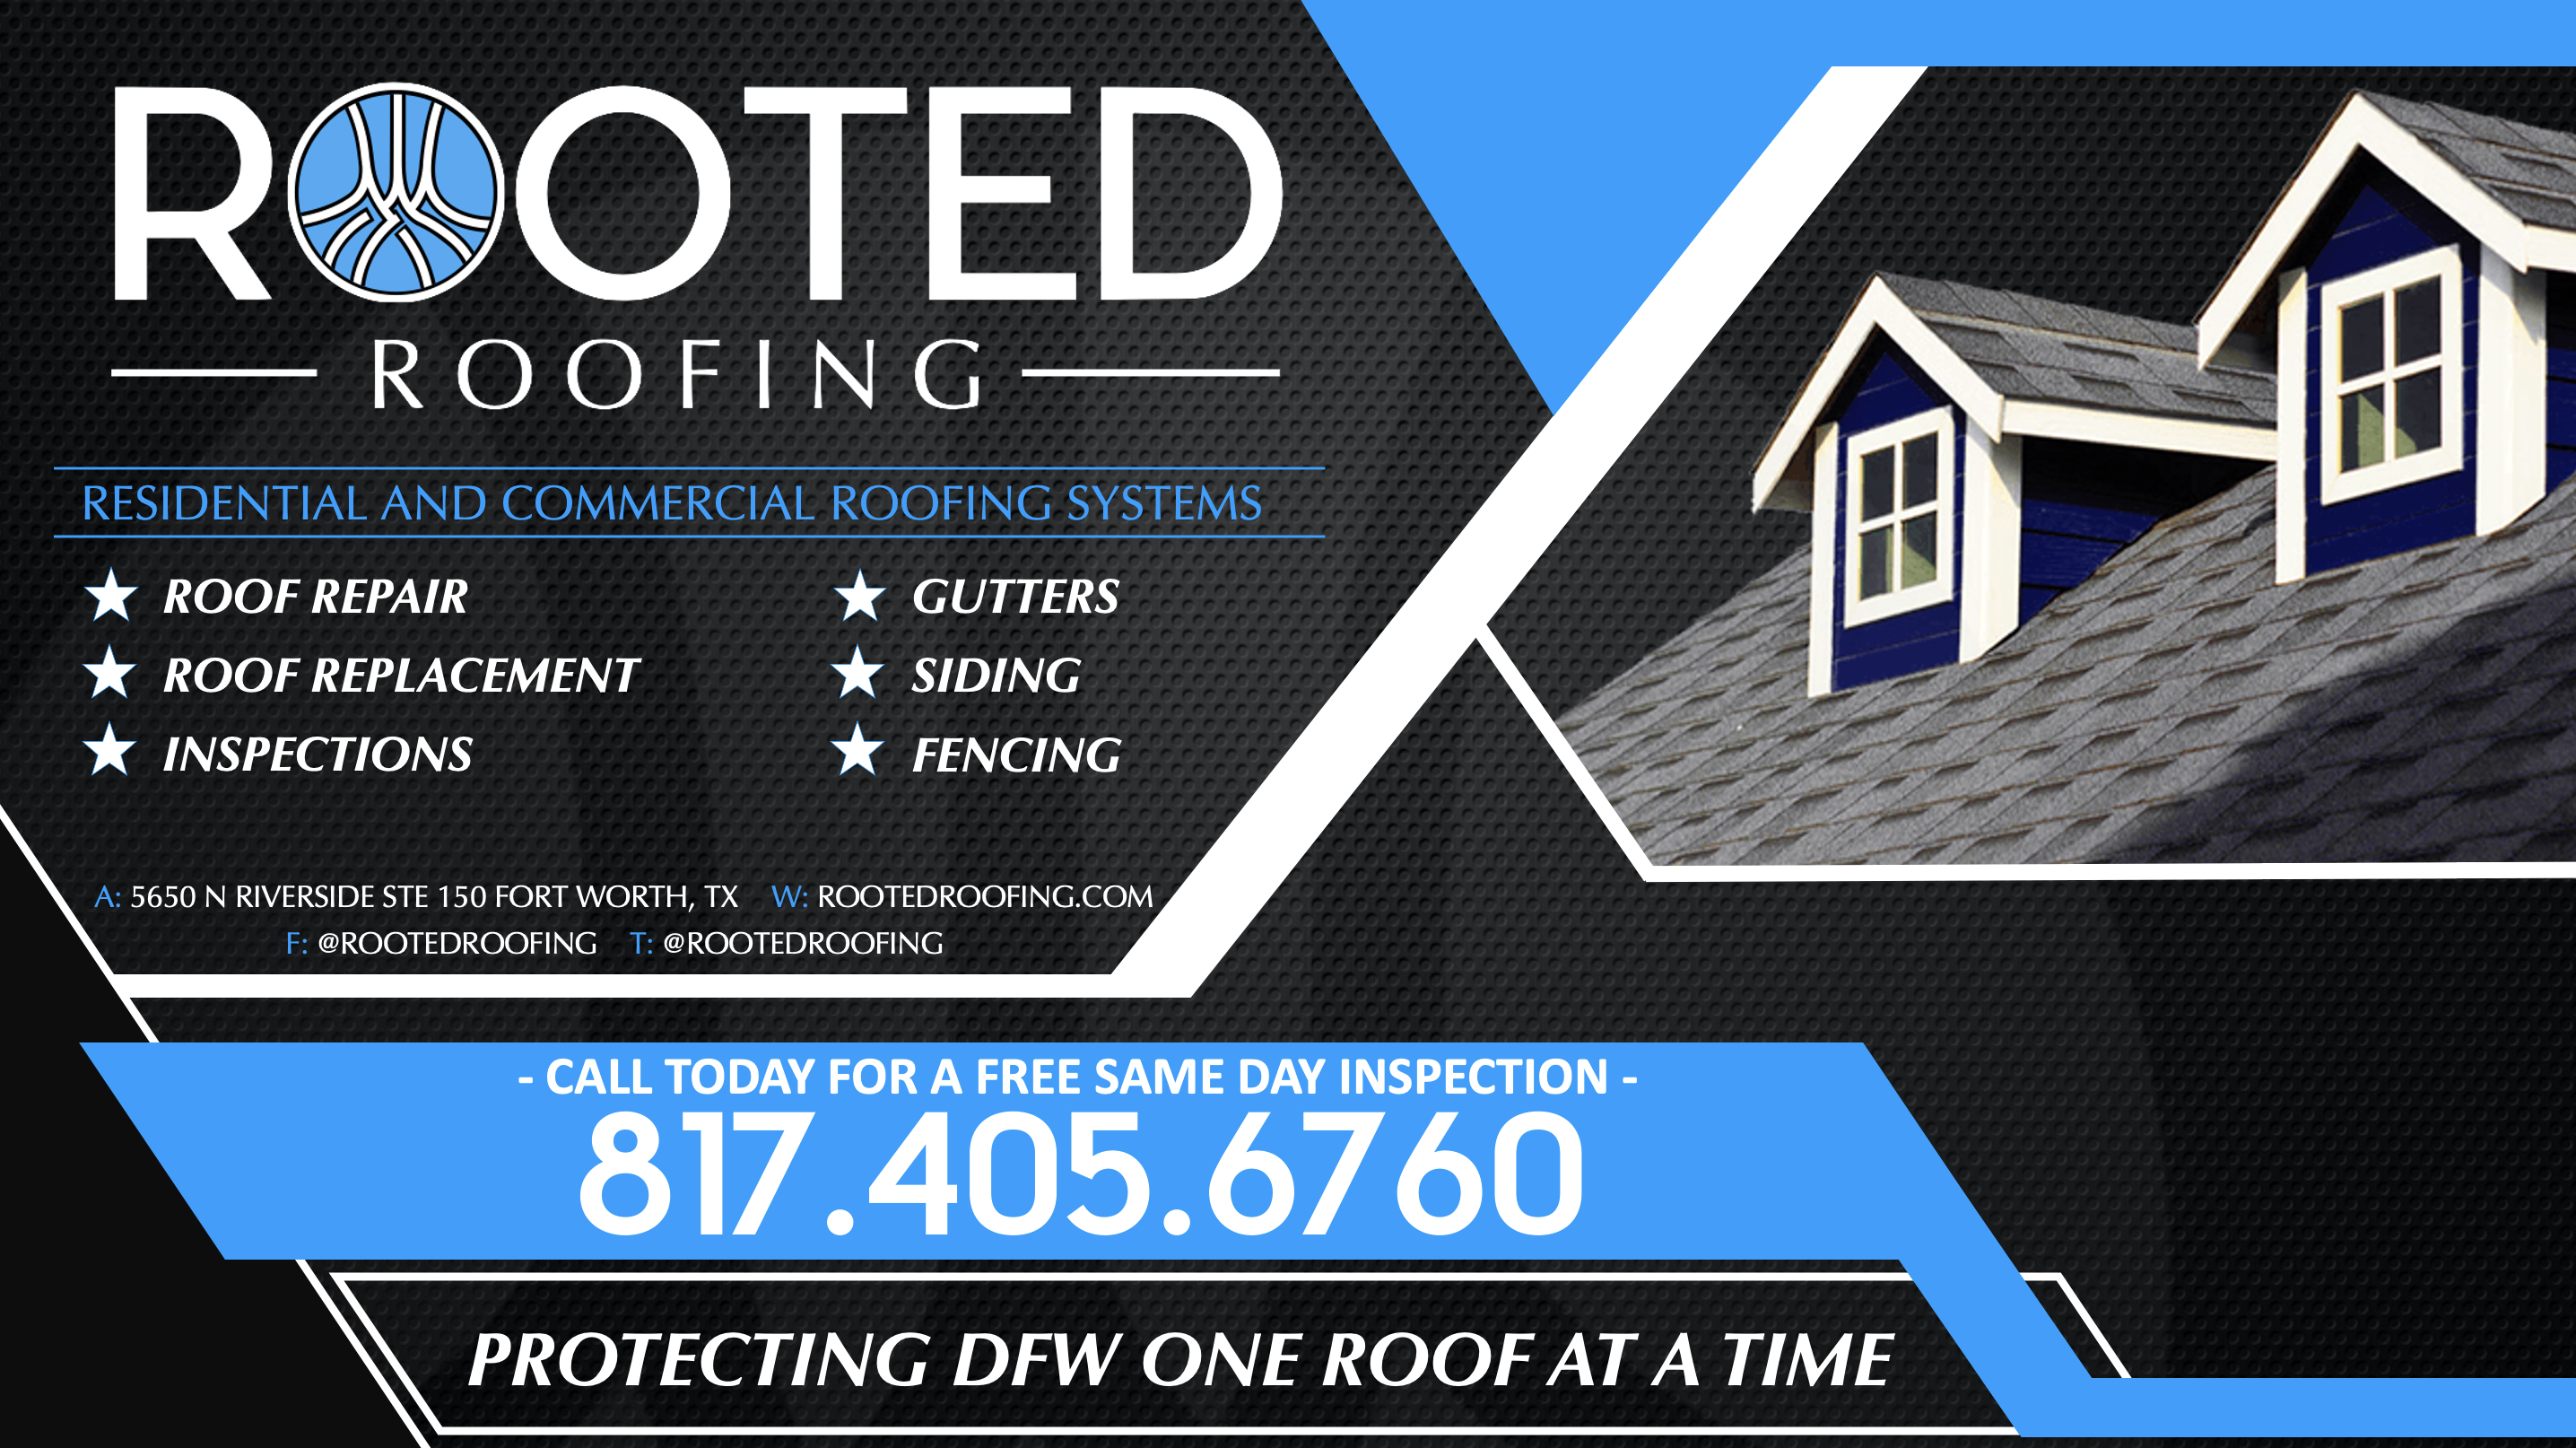 Residential Rooted Roofing